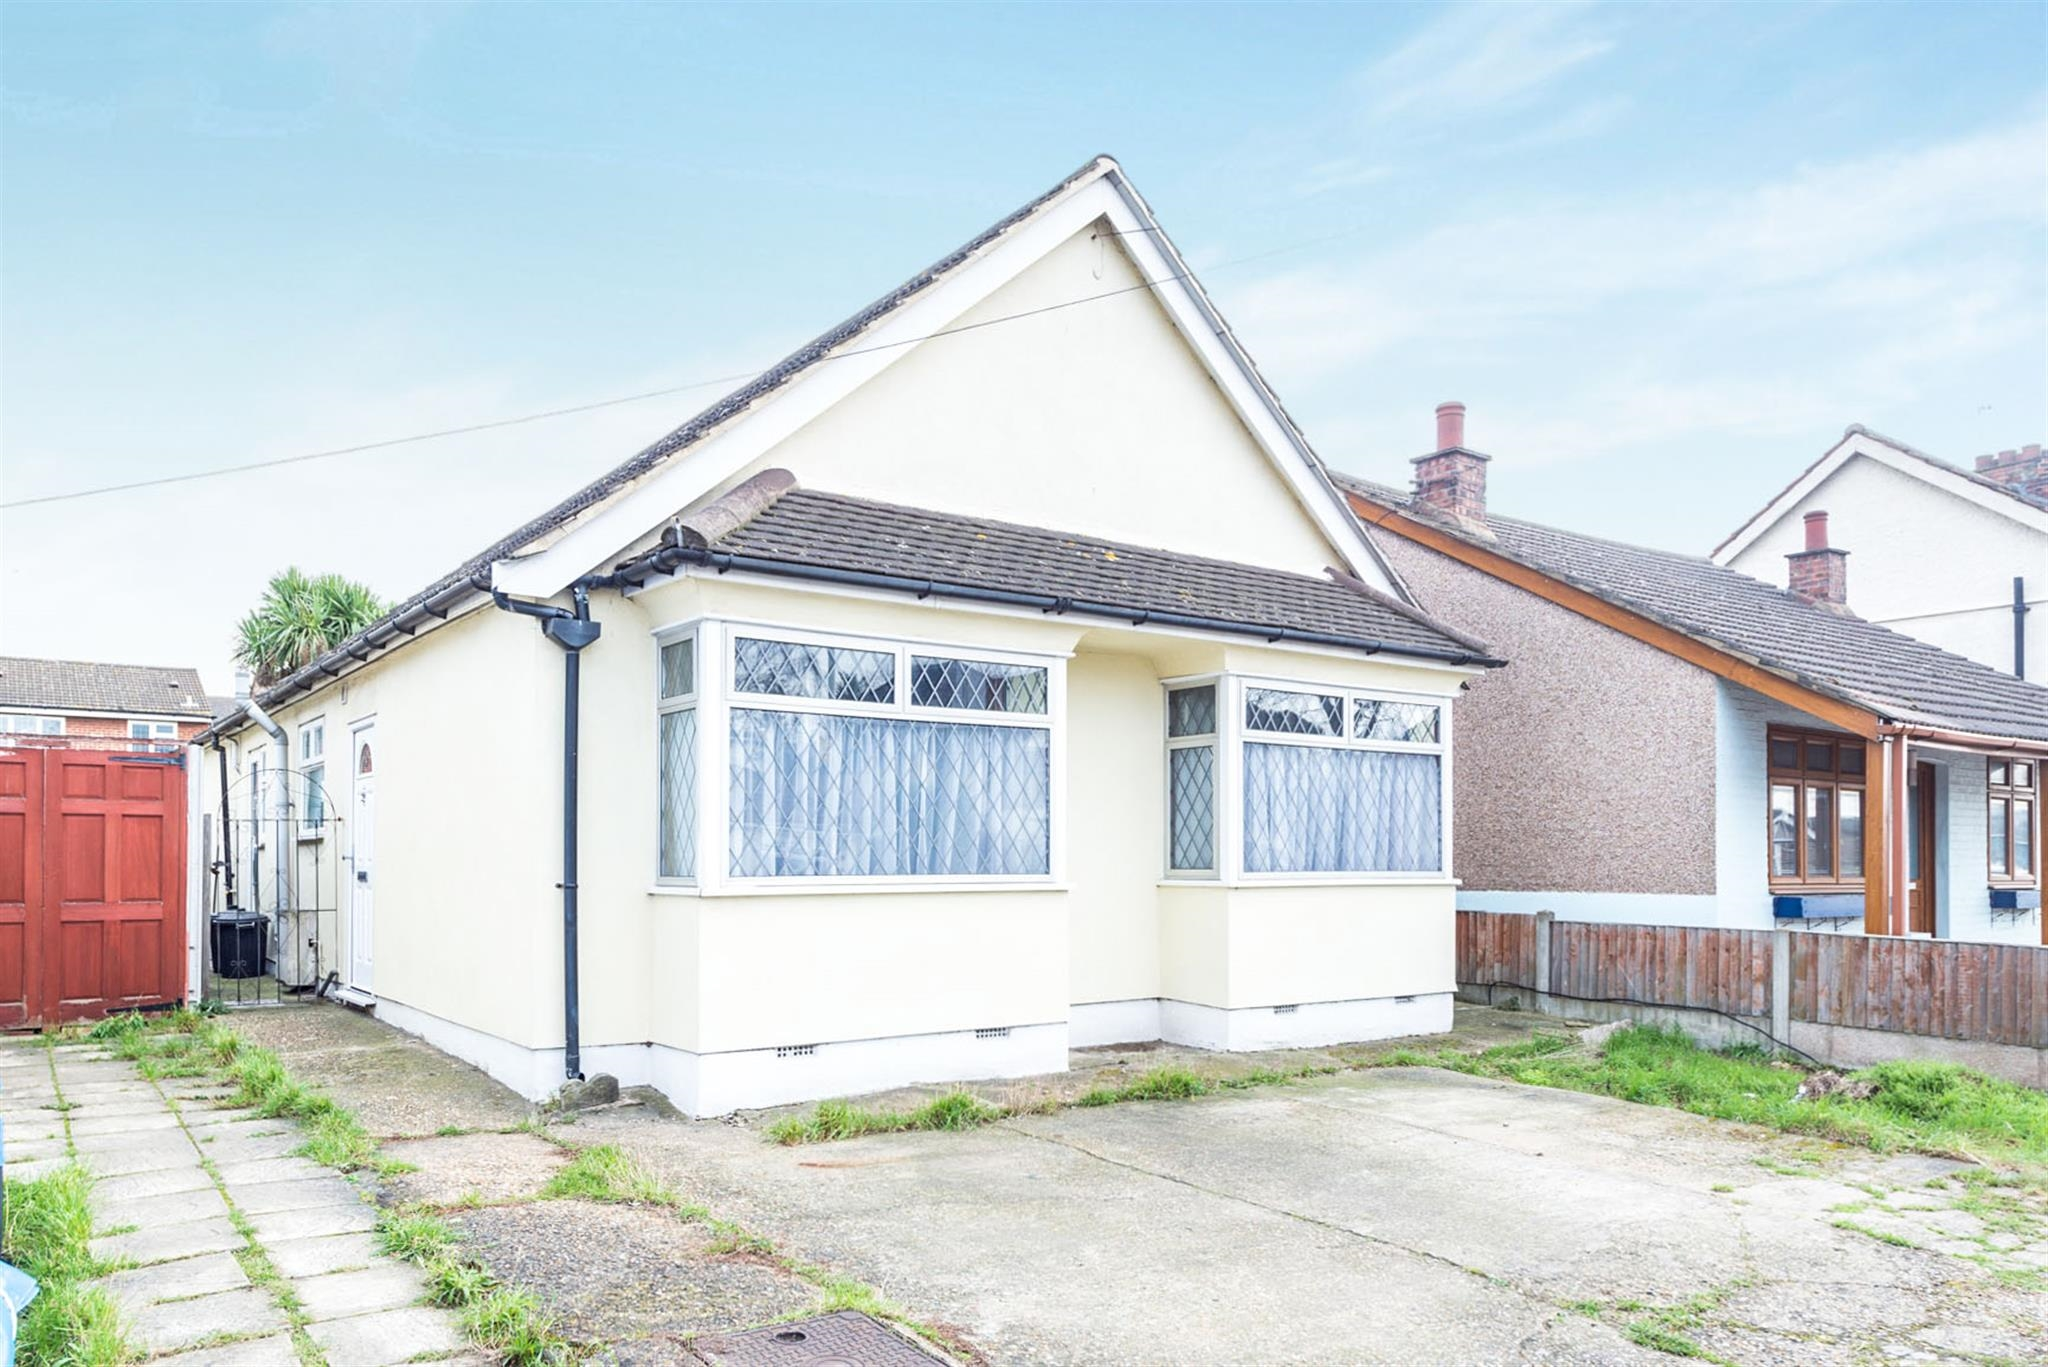 3 Bedroom Detached Bungalow For Sale Betterton Road Rainham Rm13 8na